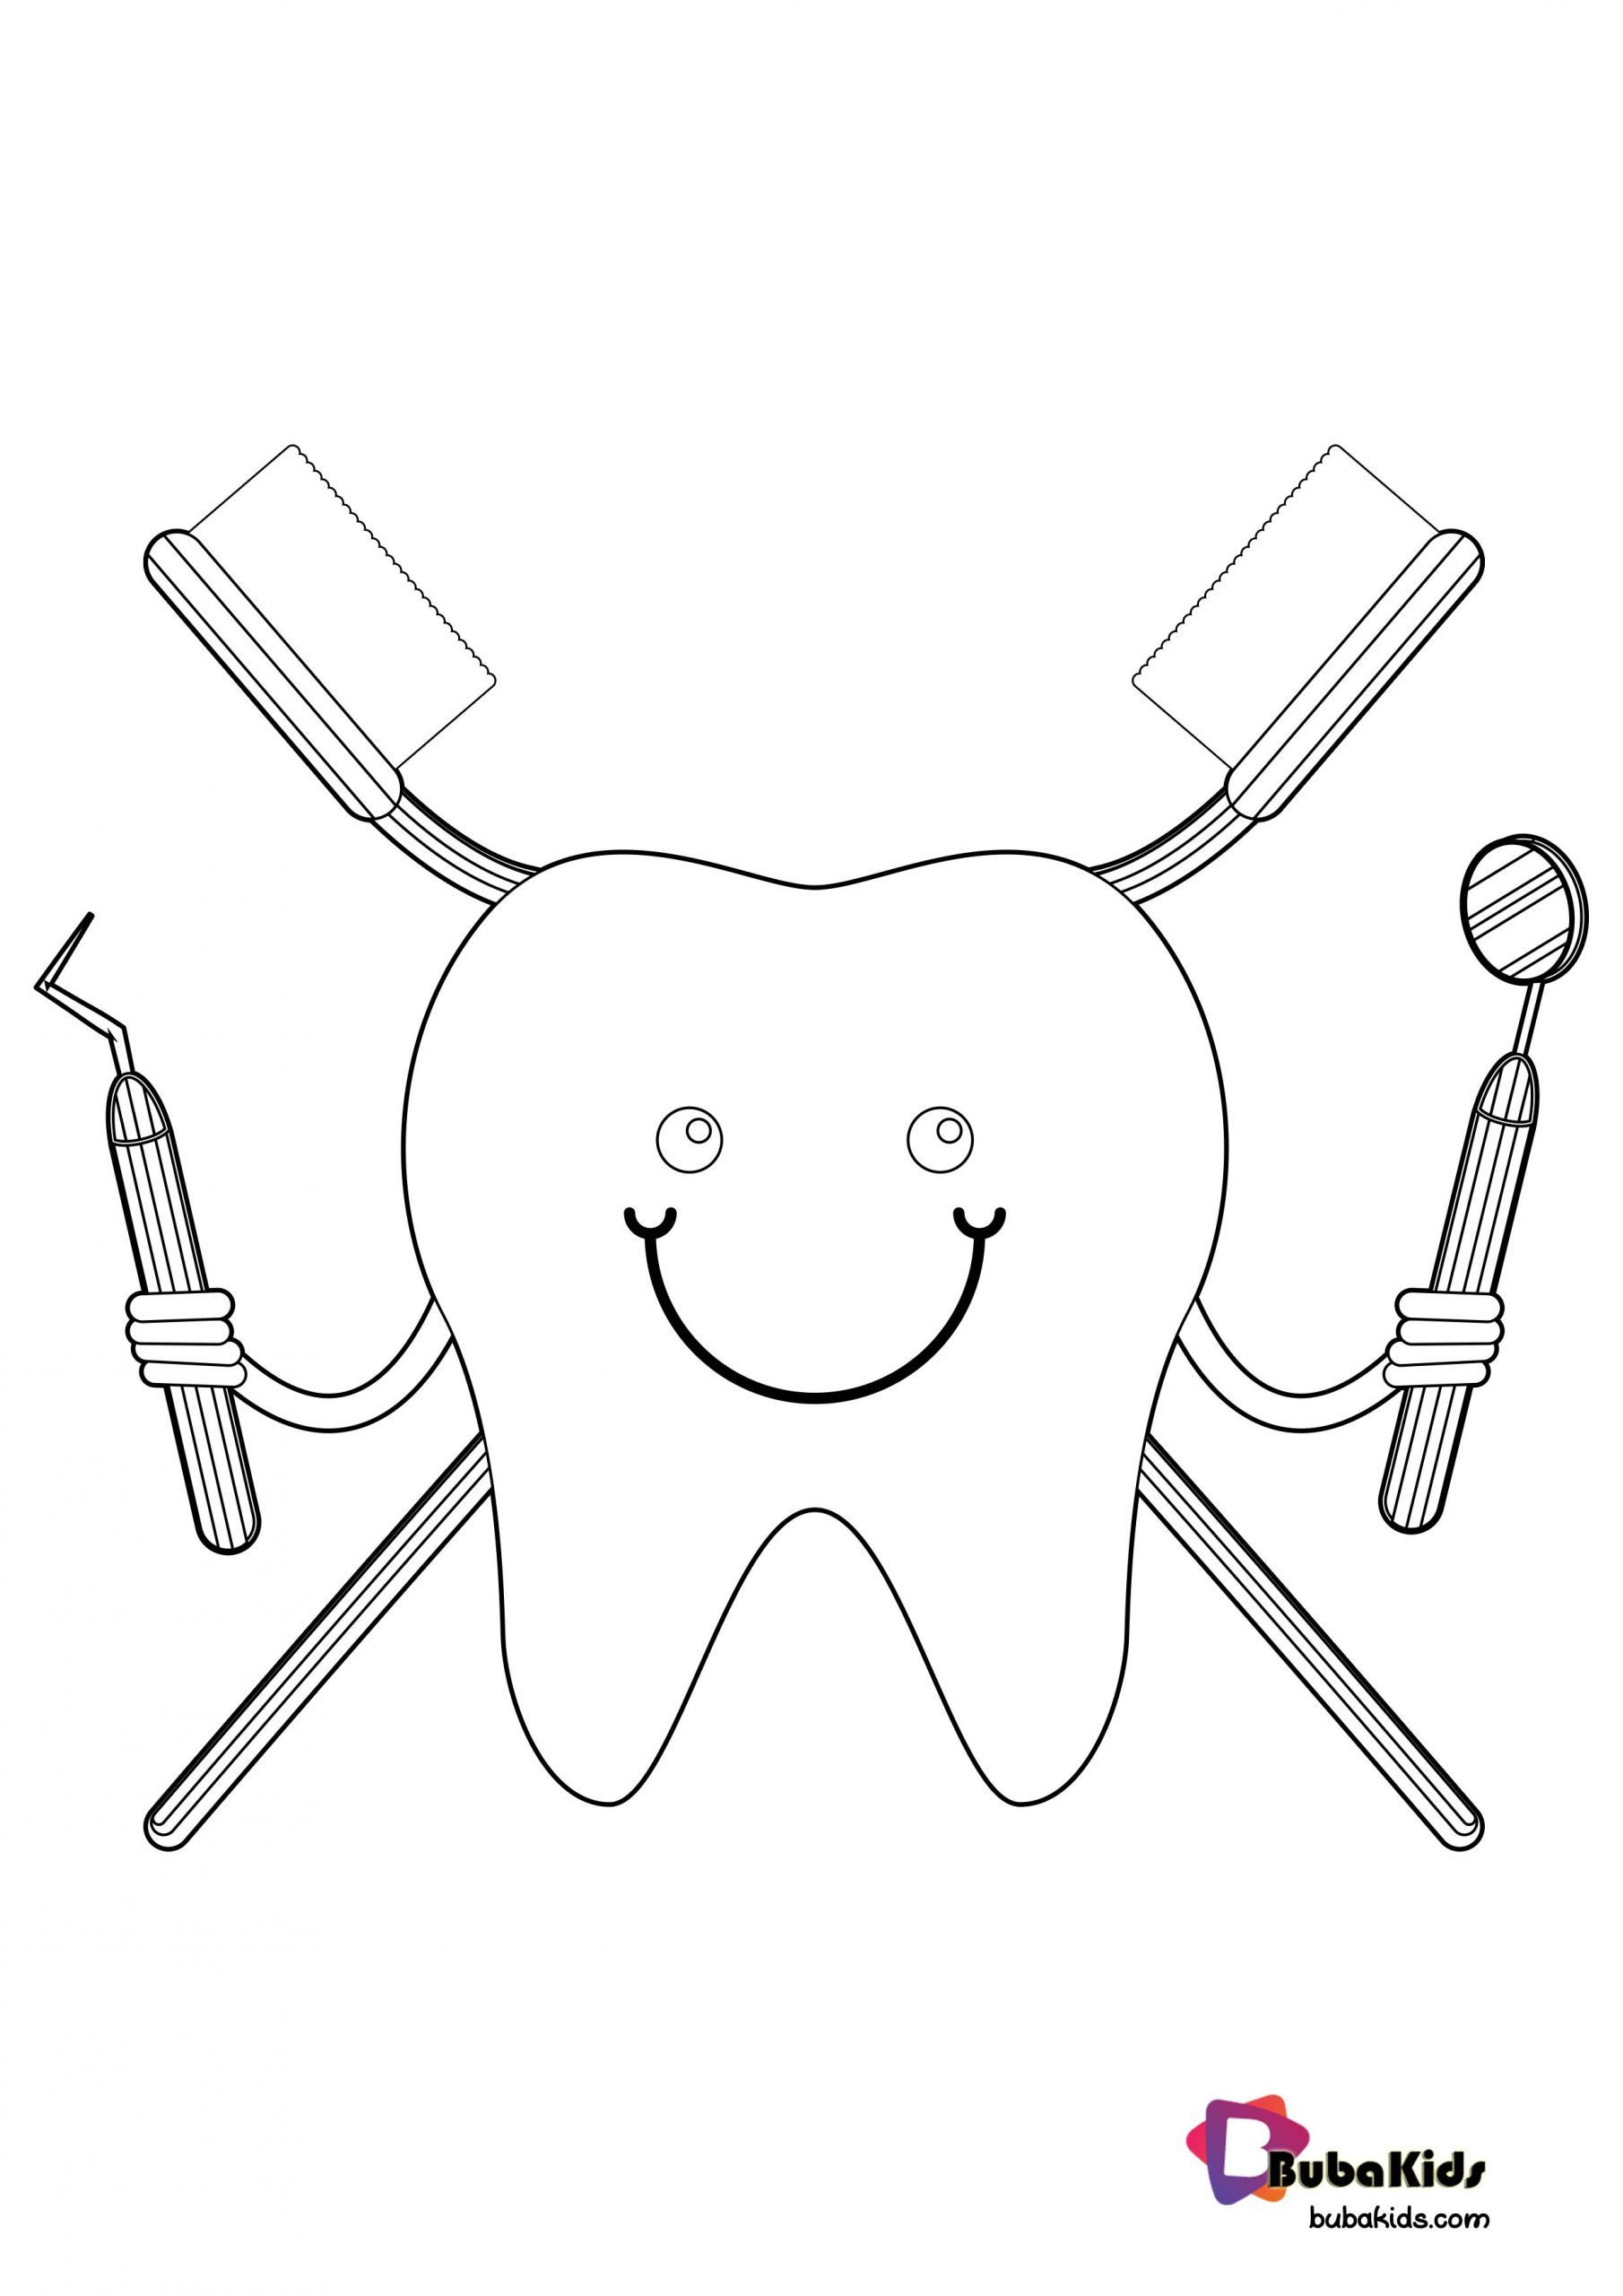 Kids Dentist Coloring Page Collection Of Cartoon Coloring Pages For Teenage Printable That You Can Download Kids Dentist Cartoon Coloring Pages Coloring Pages